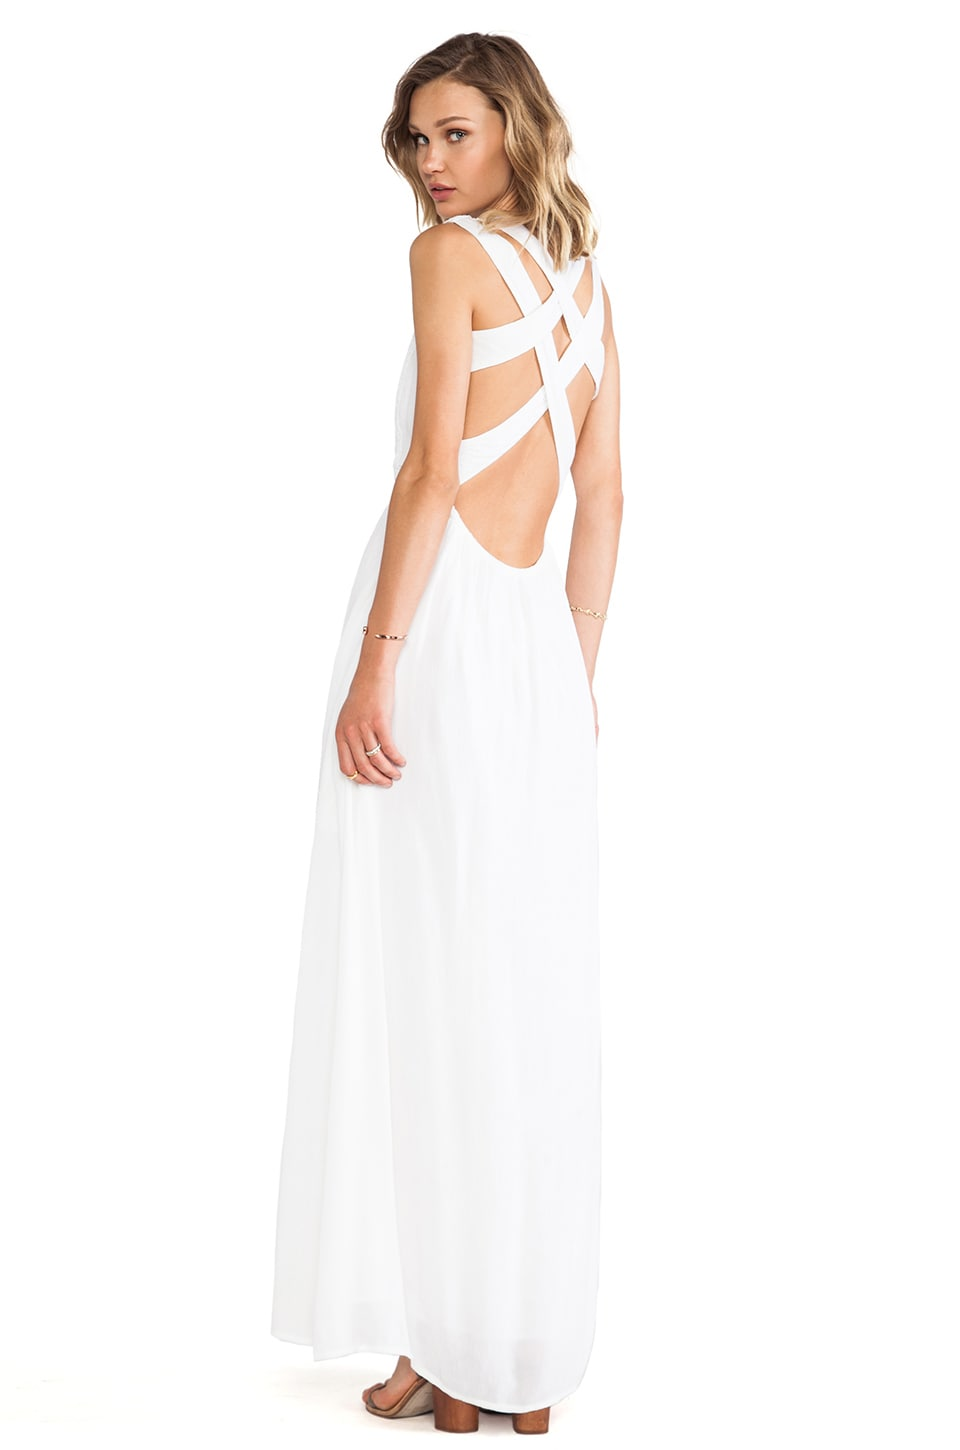 Lovers + Friends Athena Dress in White